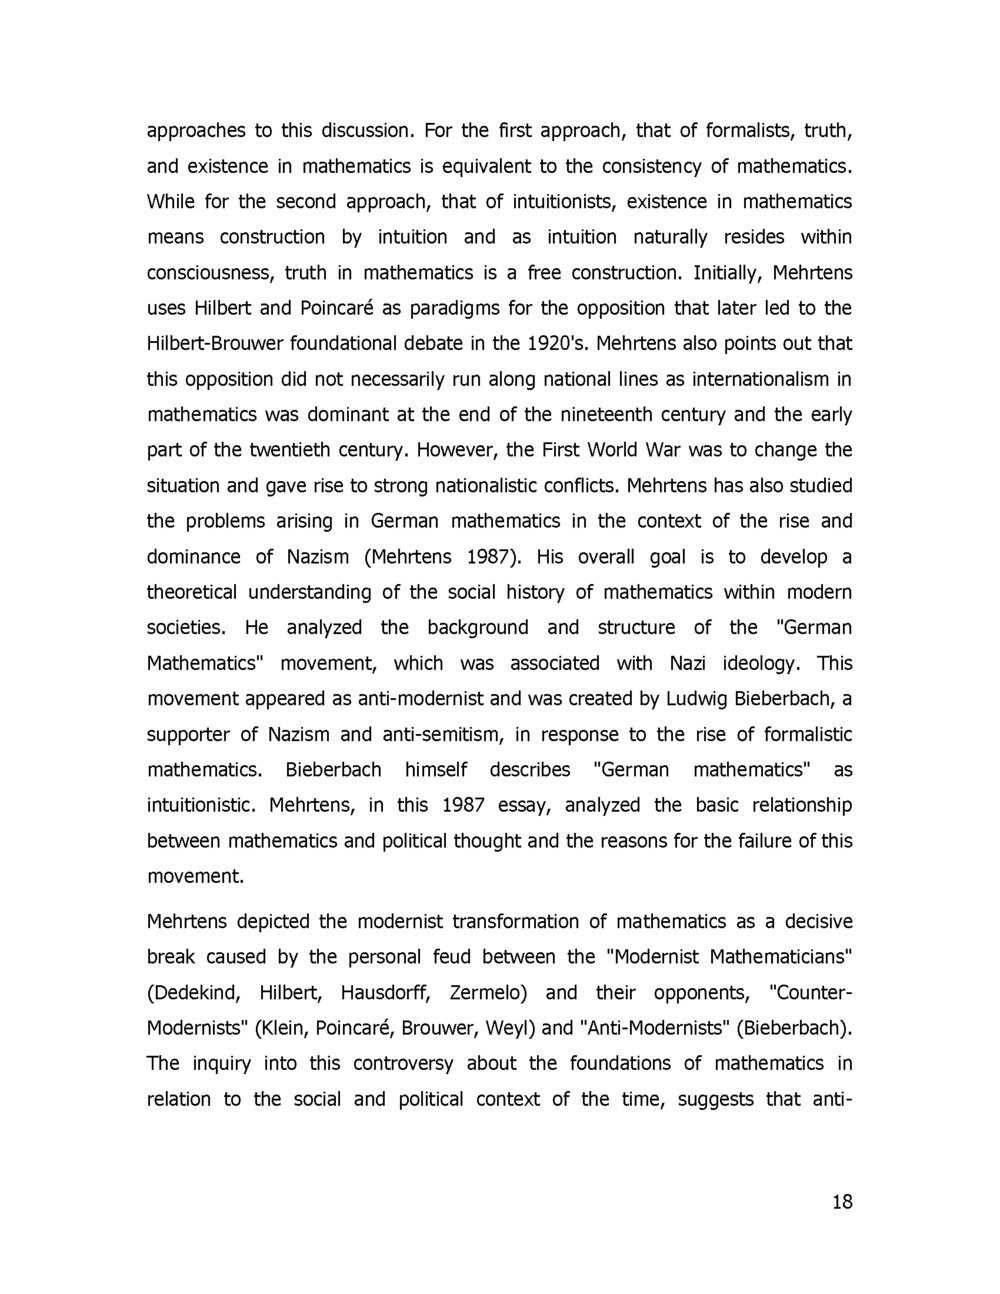 Timpilis, Dimitris (2011) Social and Cultural Approaches to the New Crisis in the Foundations of Mathematics, L. E. J. Brouwer's Free Will versus Leibniz's Dream_Page_19.jpg